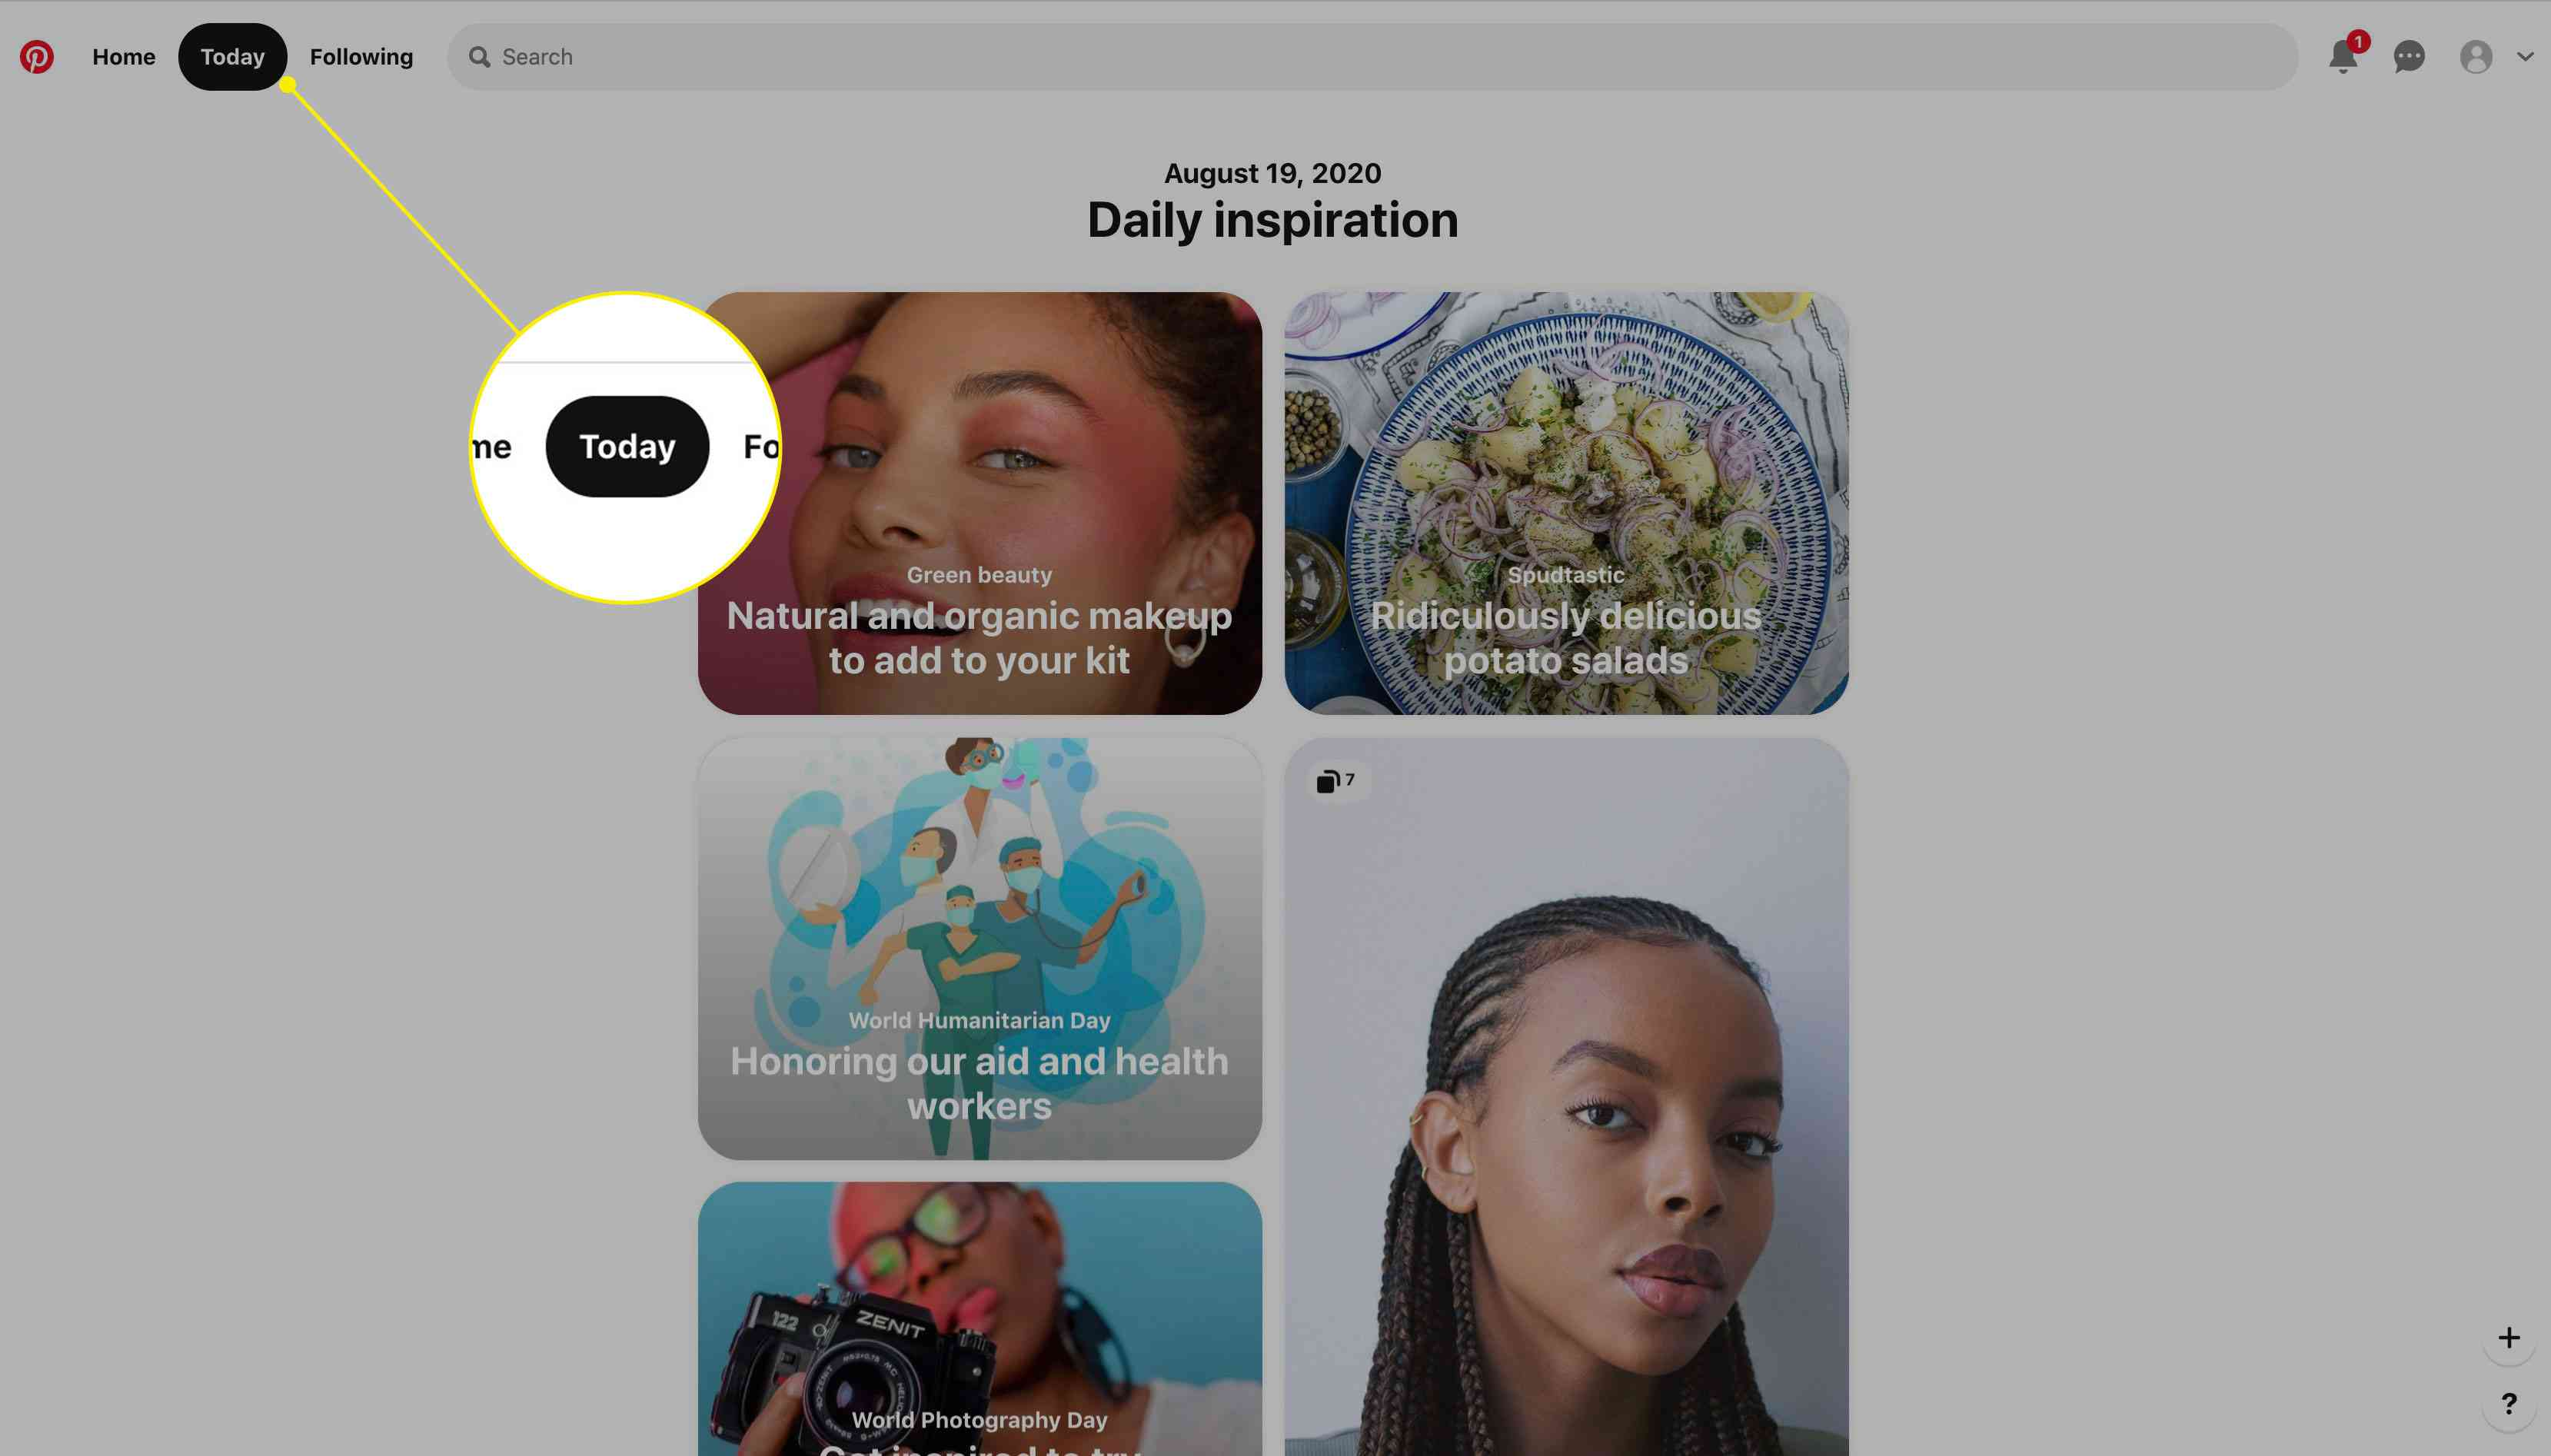 The Today tab on Pinterest